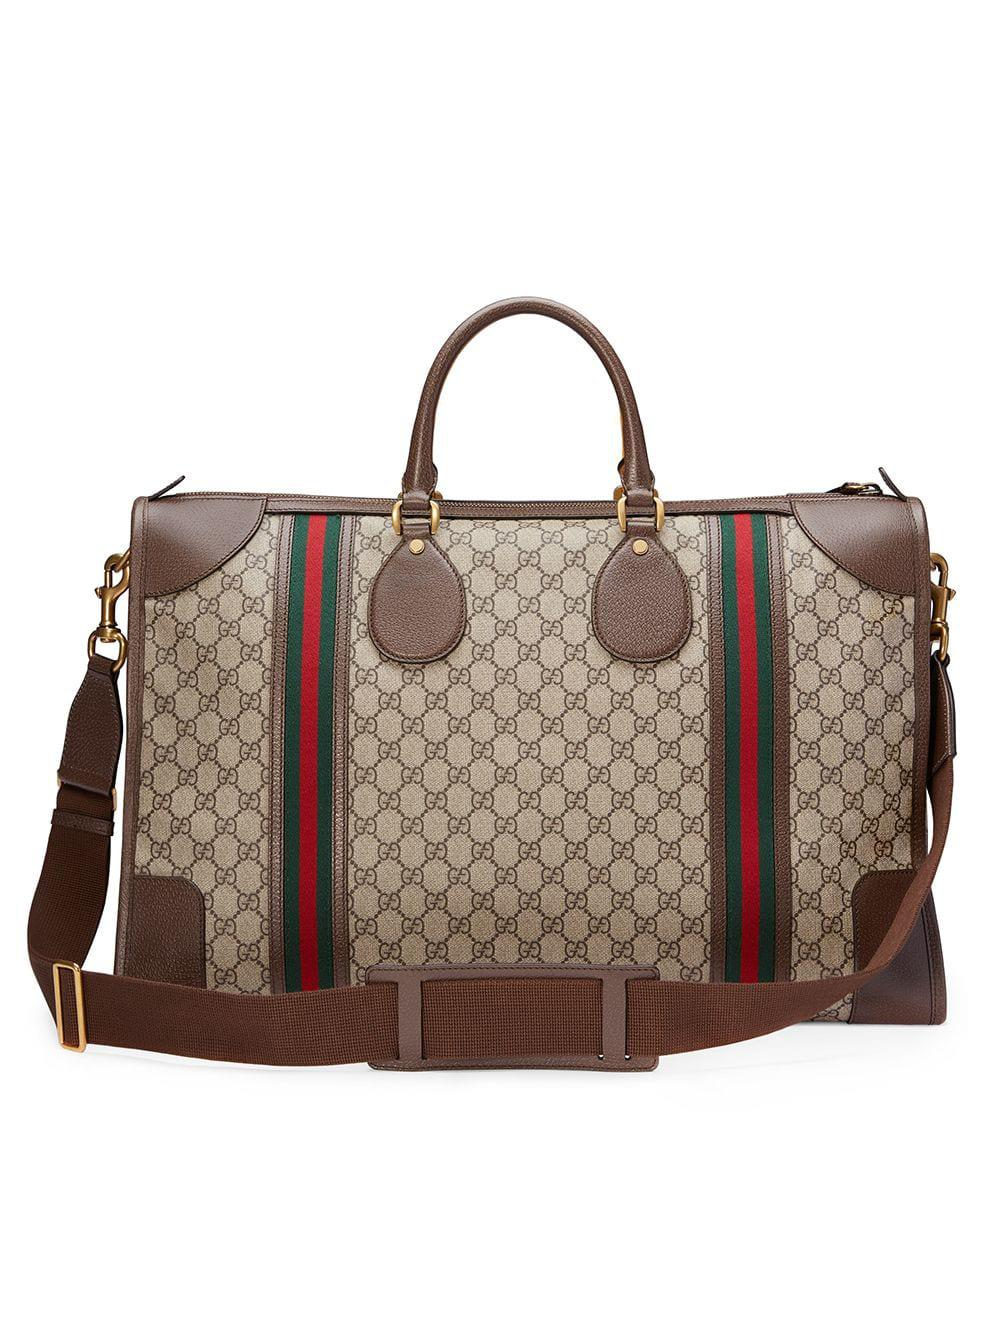 7ef649597852 Lyst - Gucci Soft GG Supreme Duffle Bag With Web in Brown